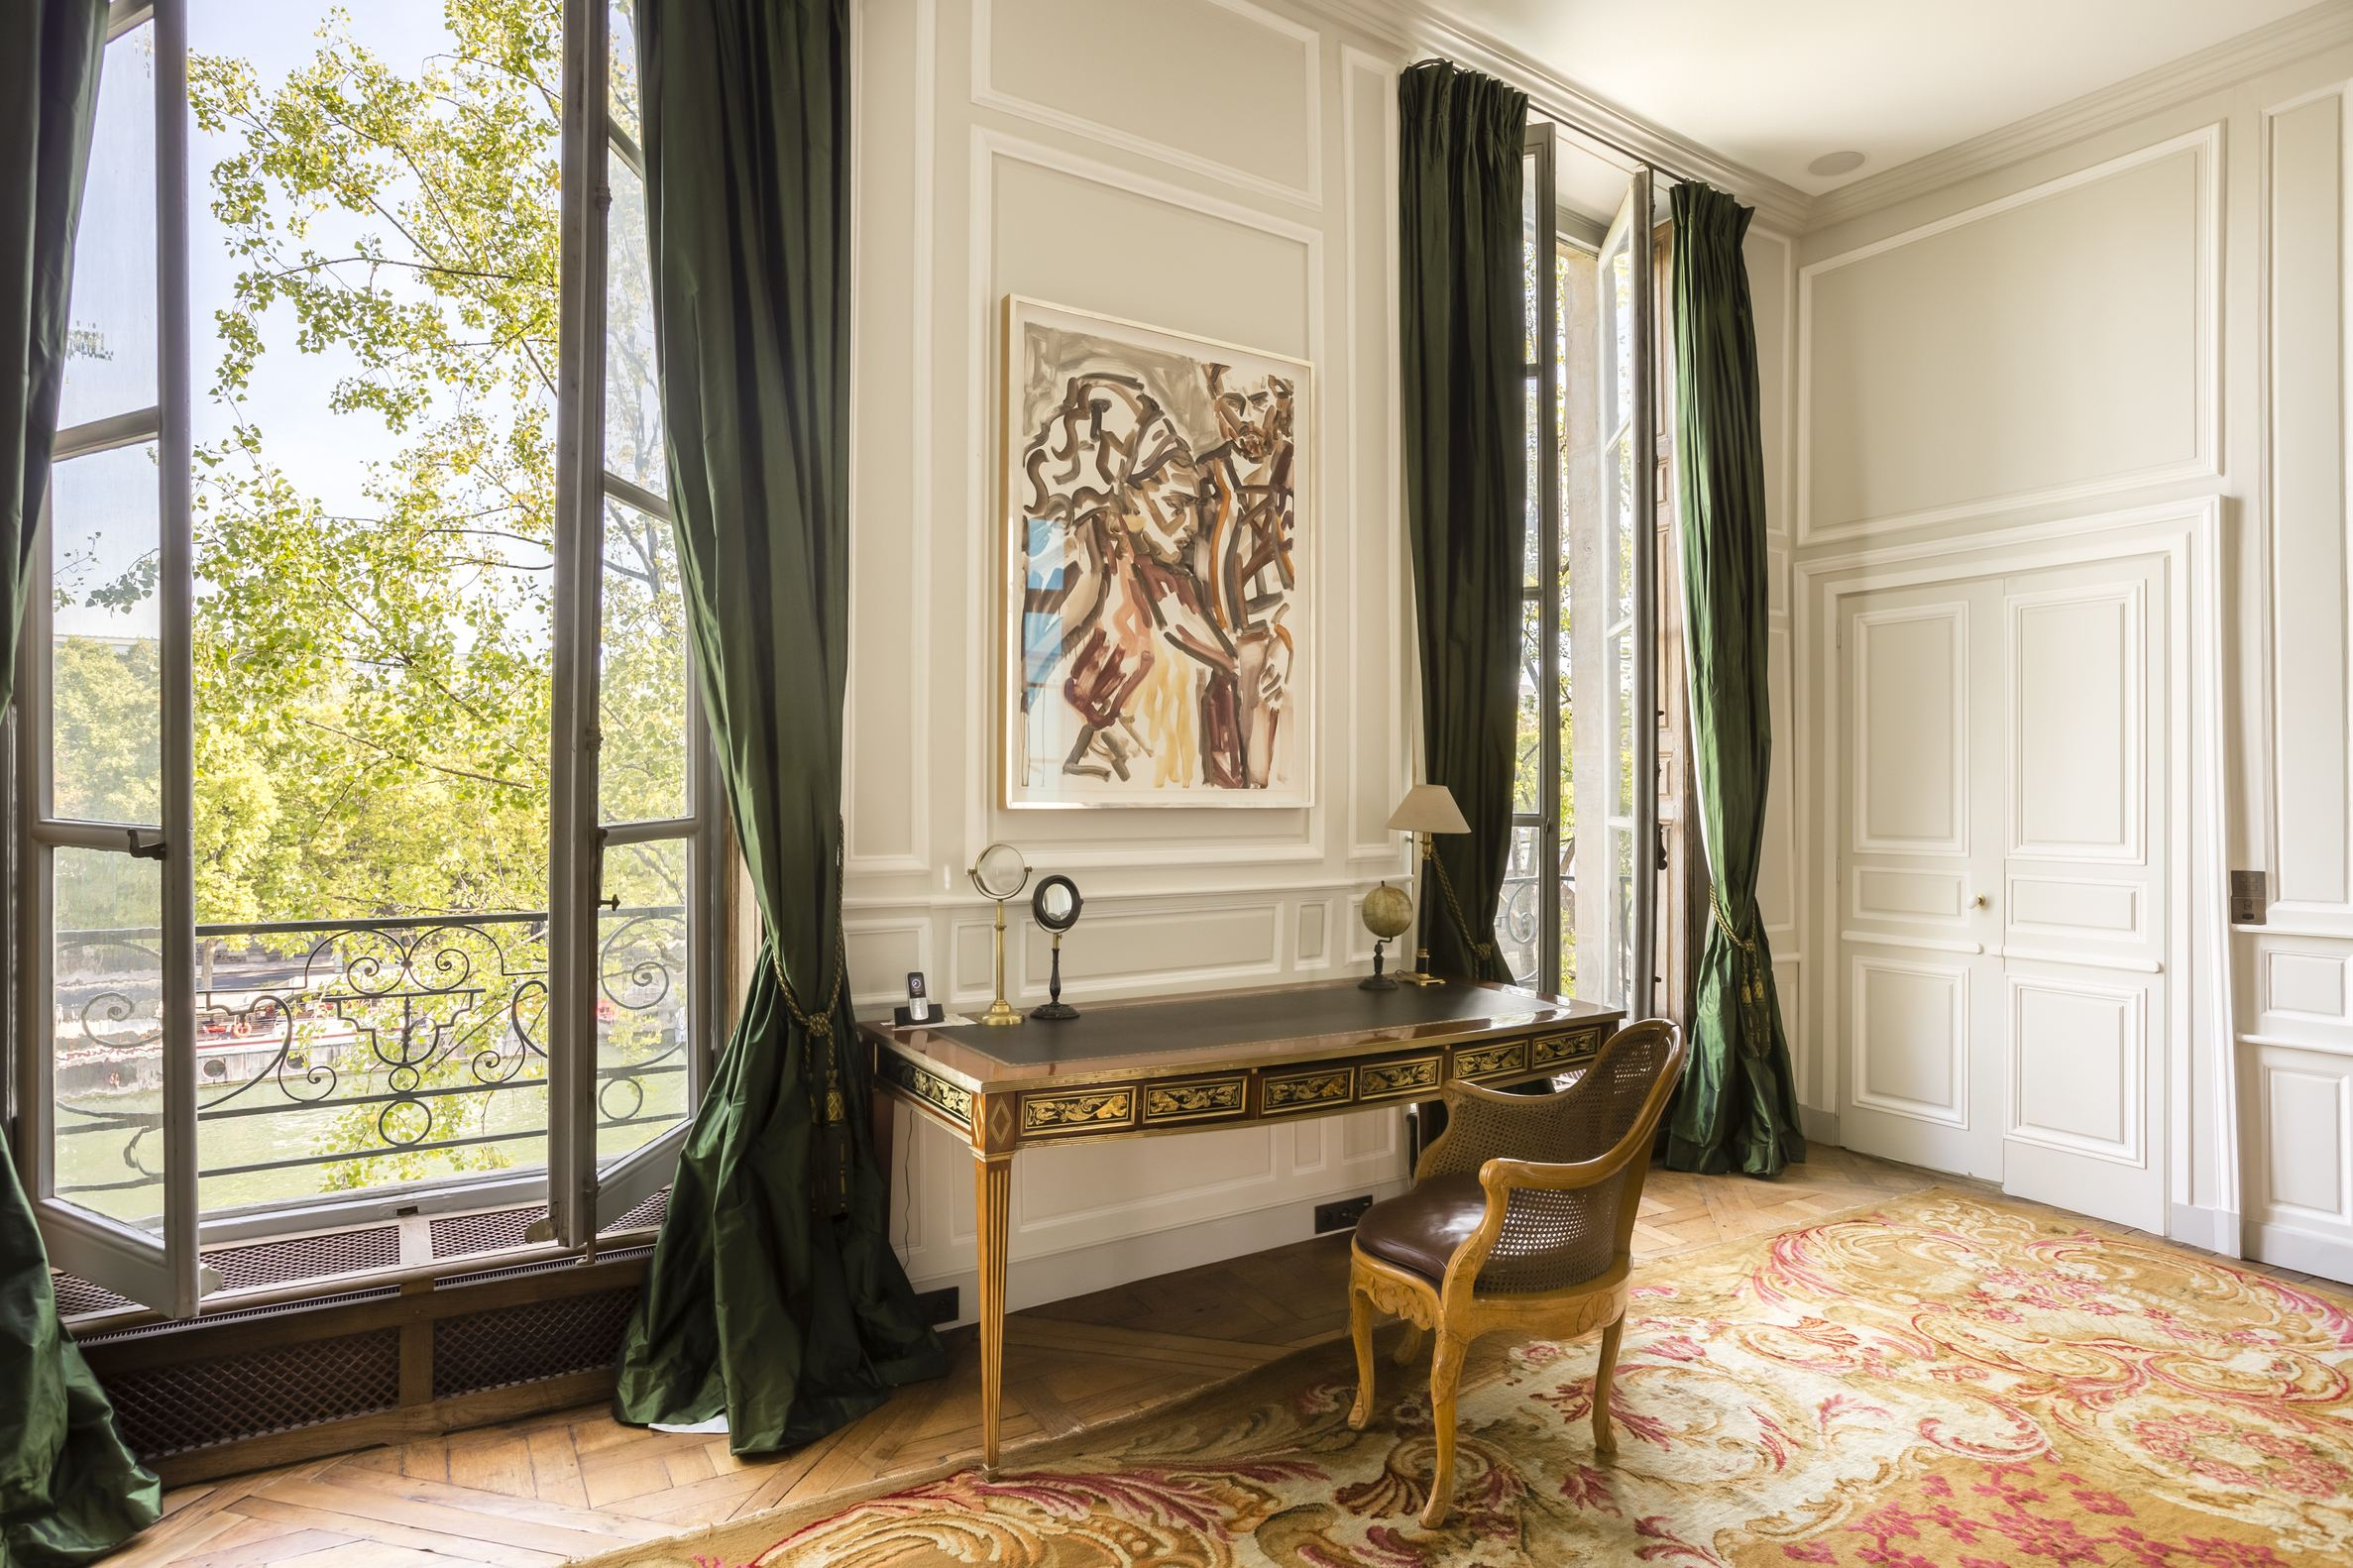 sales property at 75004 - Elegant apartment on Ile Saint-Louis